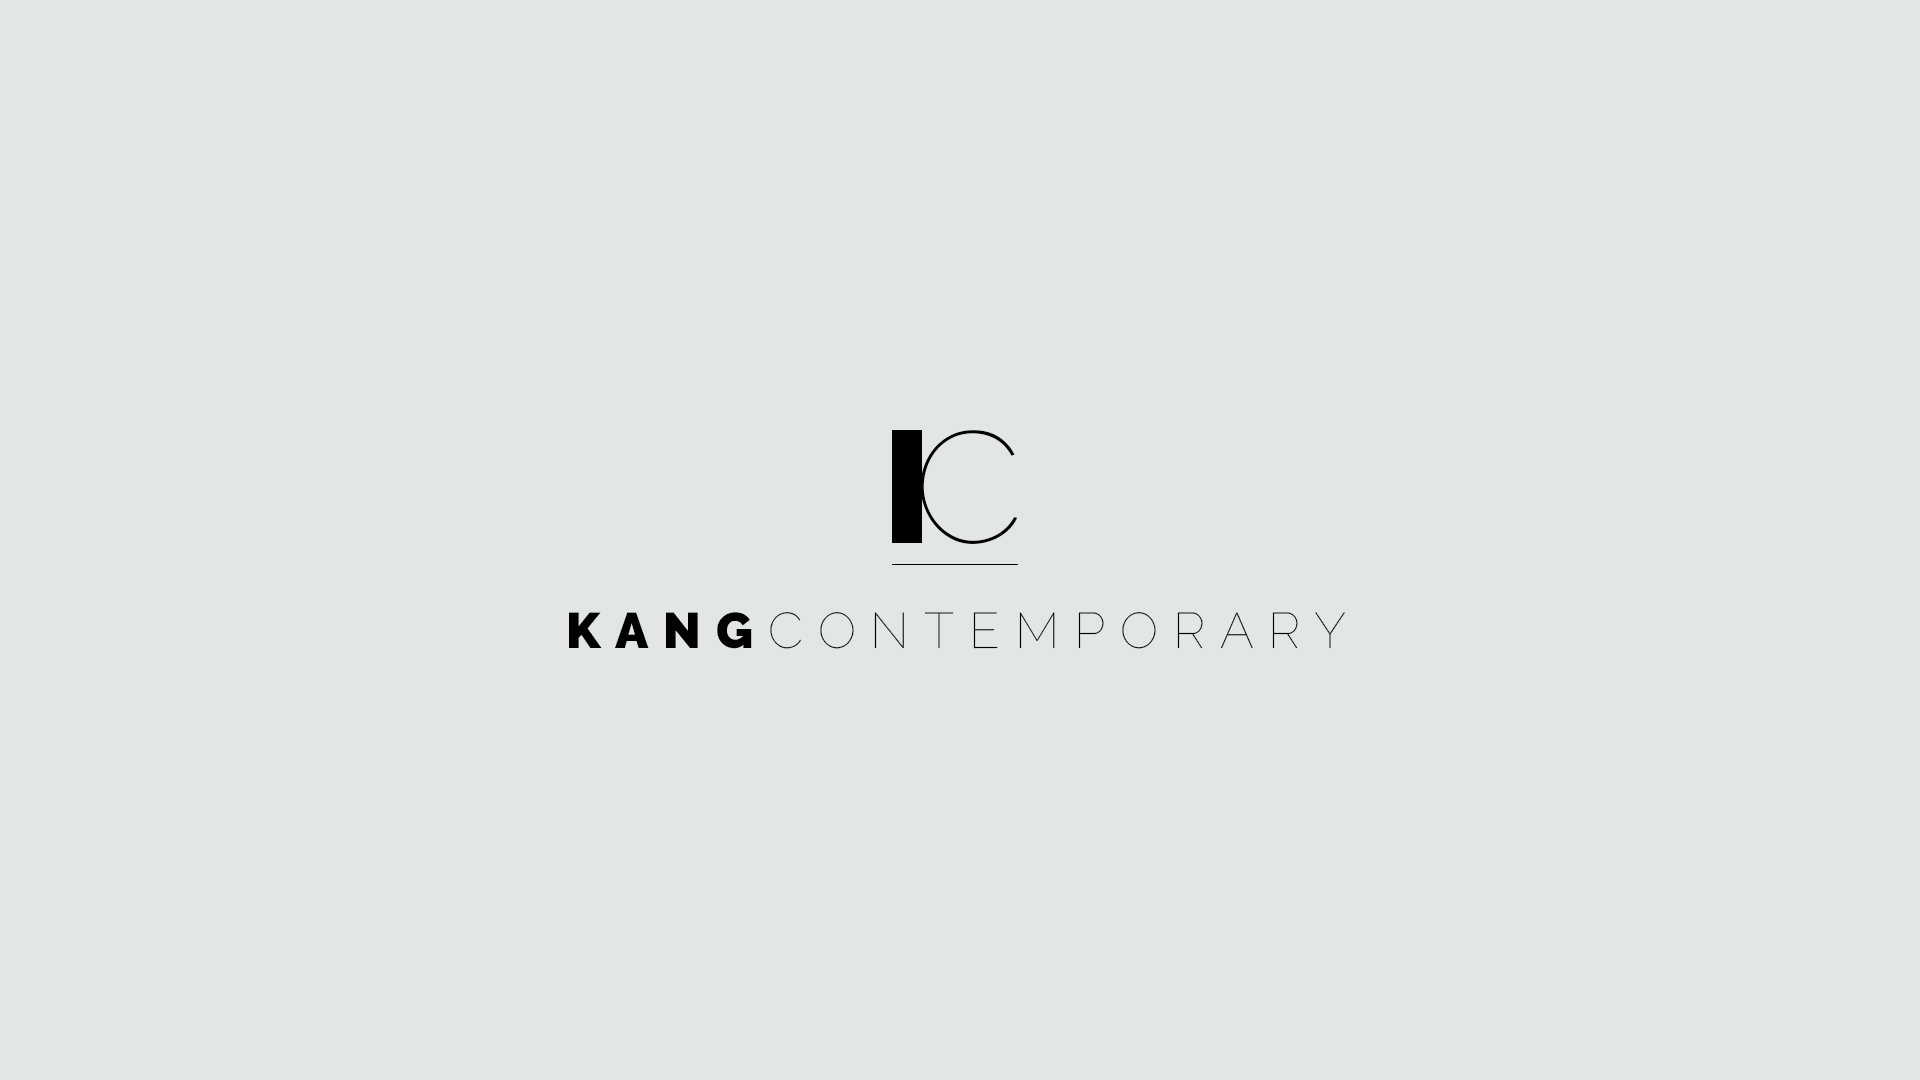 Kang Contemporary